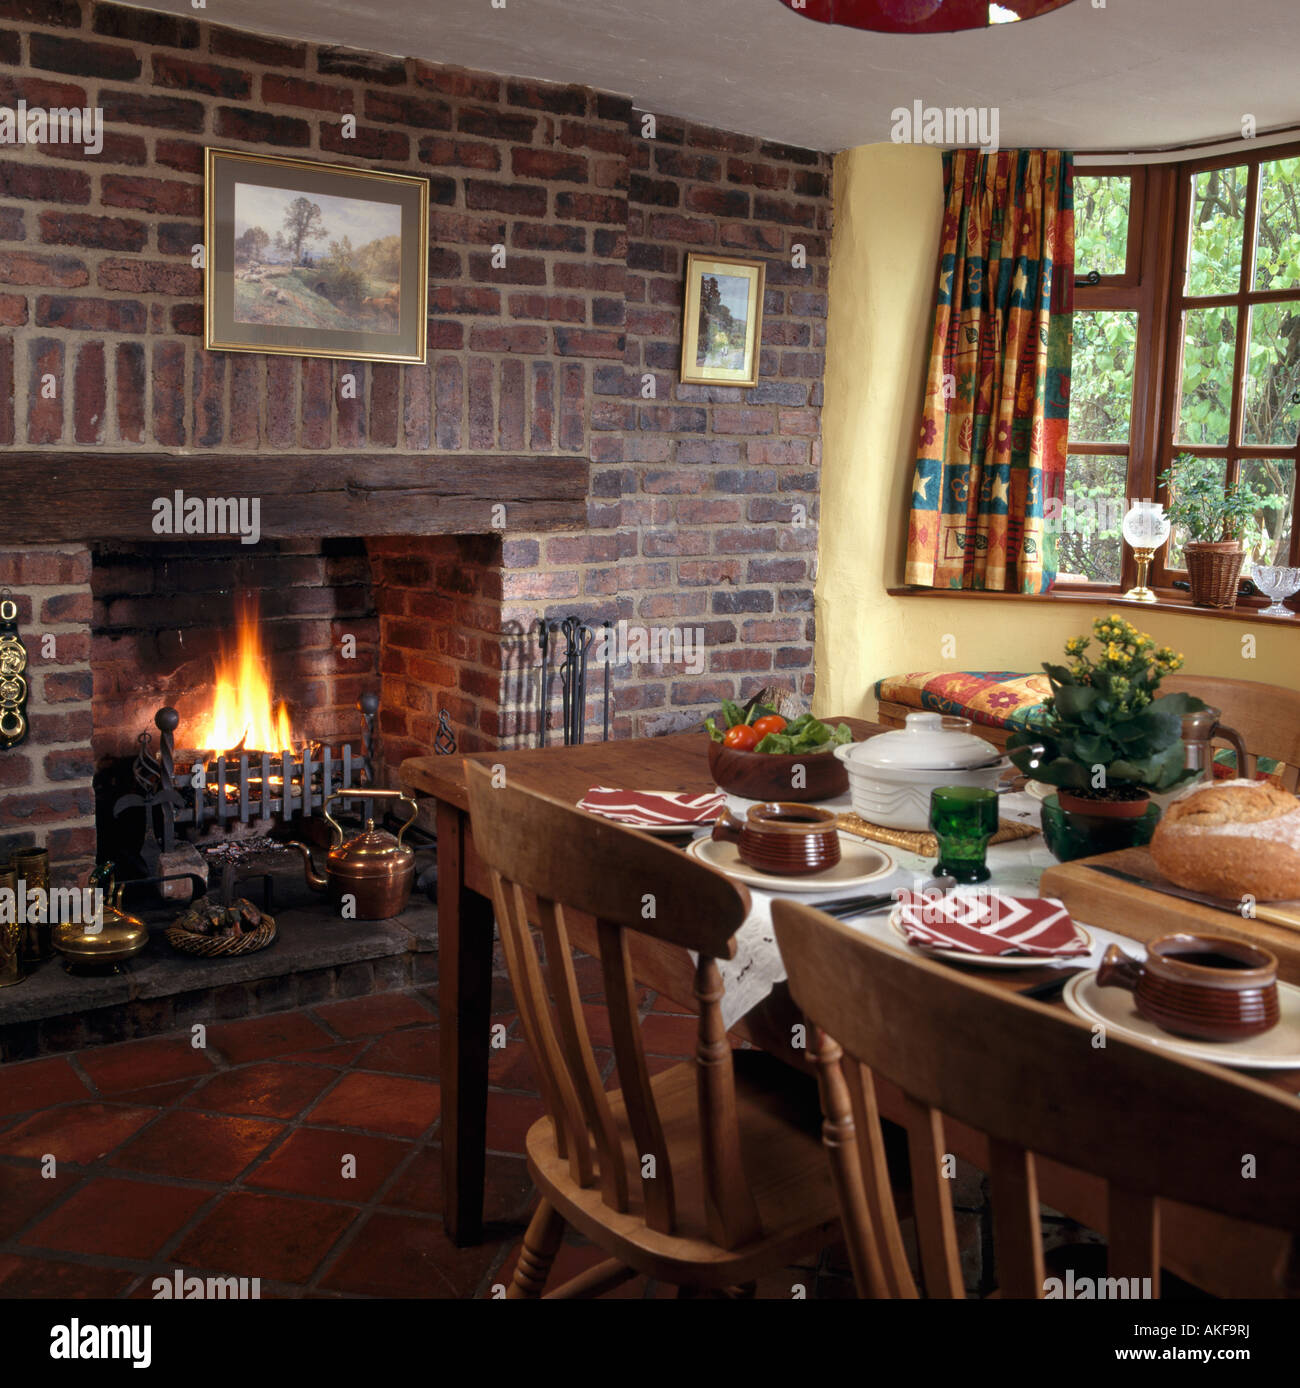 Lighted Fire In Fireplace Exposed Brick Wall Cottage Dining Room With Table Set For Lunch